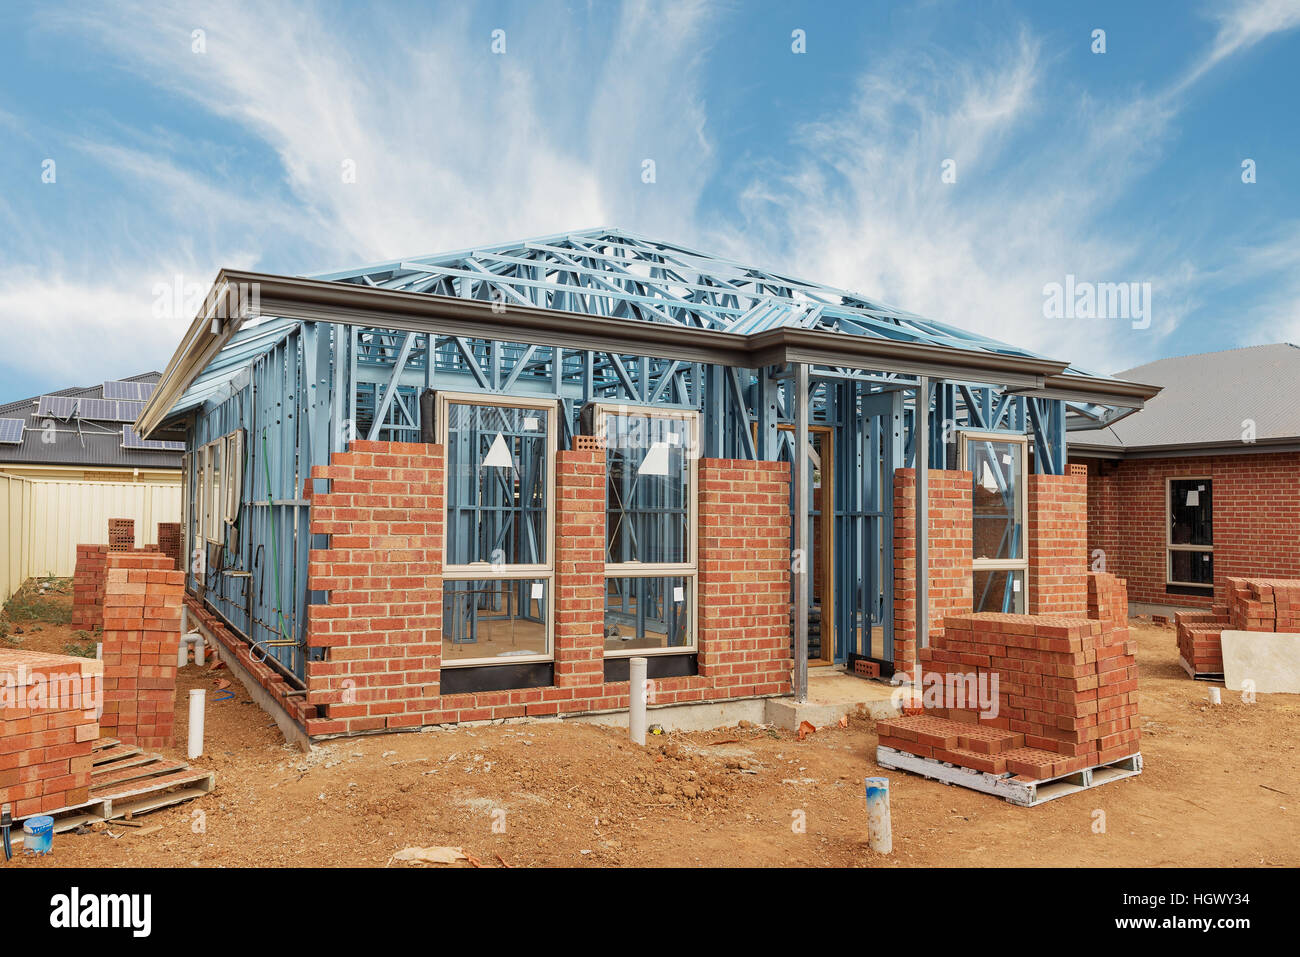 New Residential Construction Home From Brick With Metal